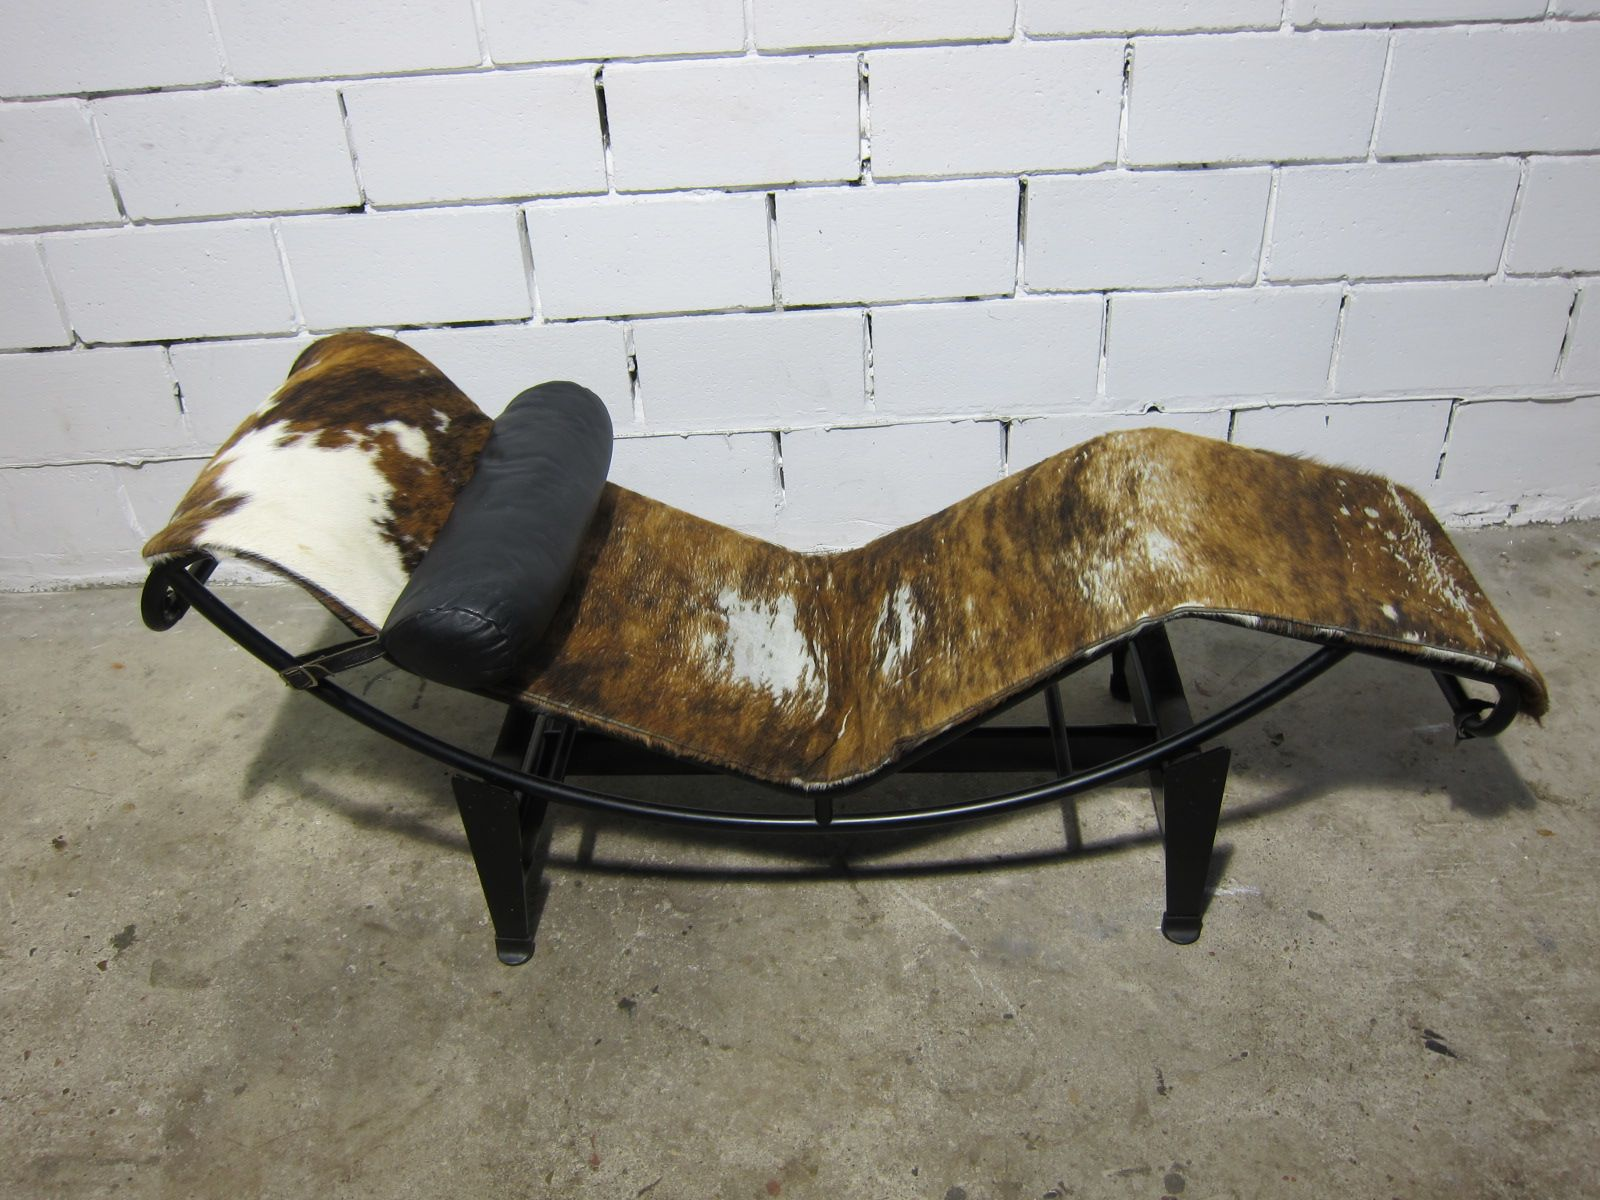 Ic4 chaise lounge by le corbuier for cassina 1970s for for Chaise longue pony